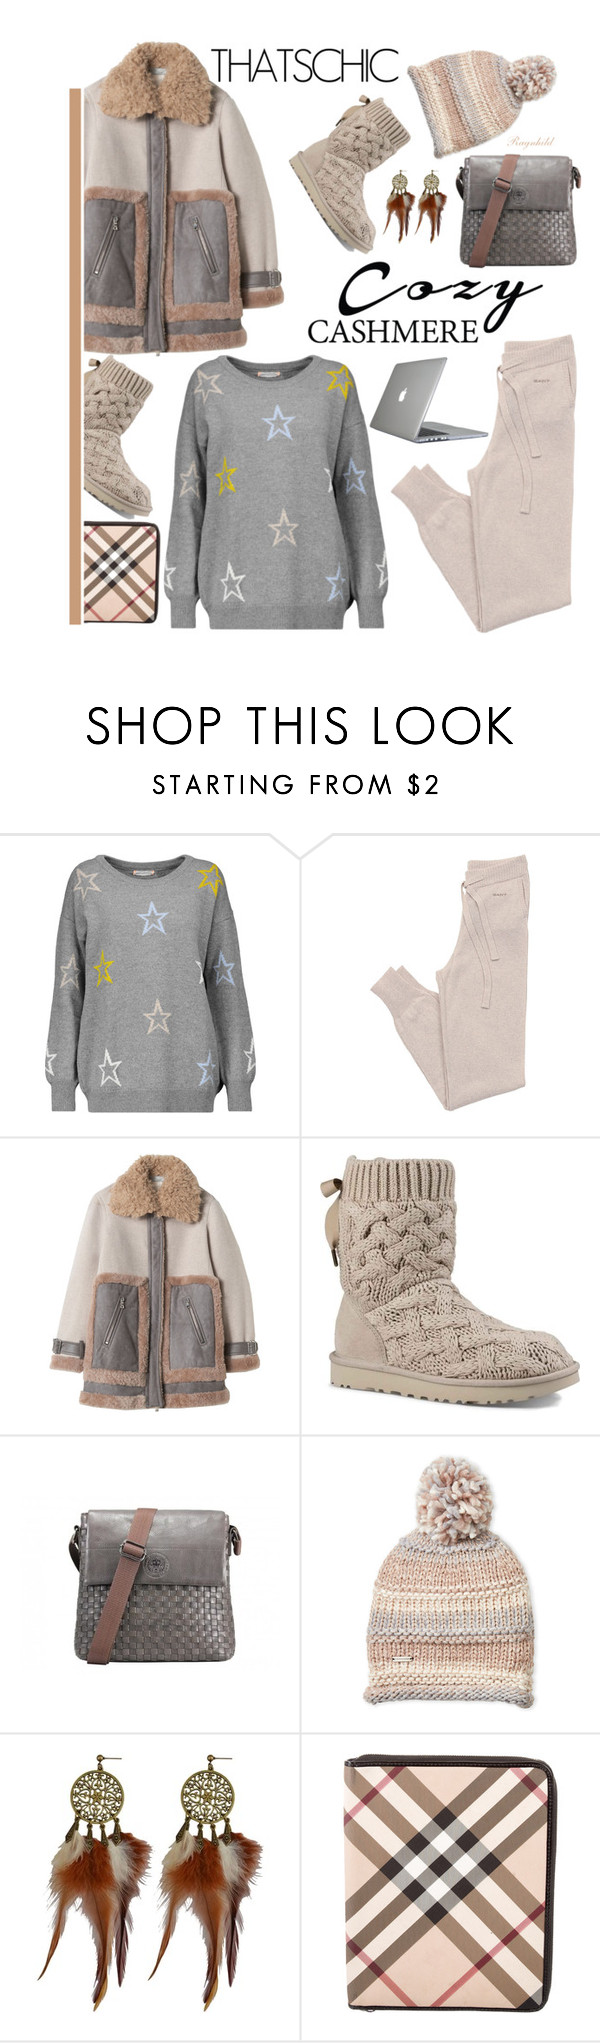 """""""Cozy Chic"""" by ragnh-mjos ❤ liked on Polyvore featuring Chinti and Parker, GANT, UGG, Steve Madden, Burberry and Speck"""